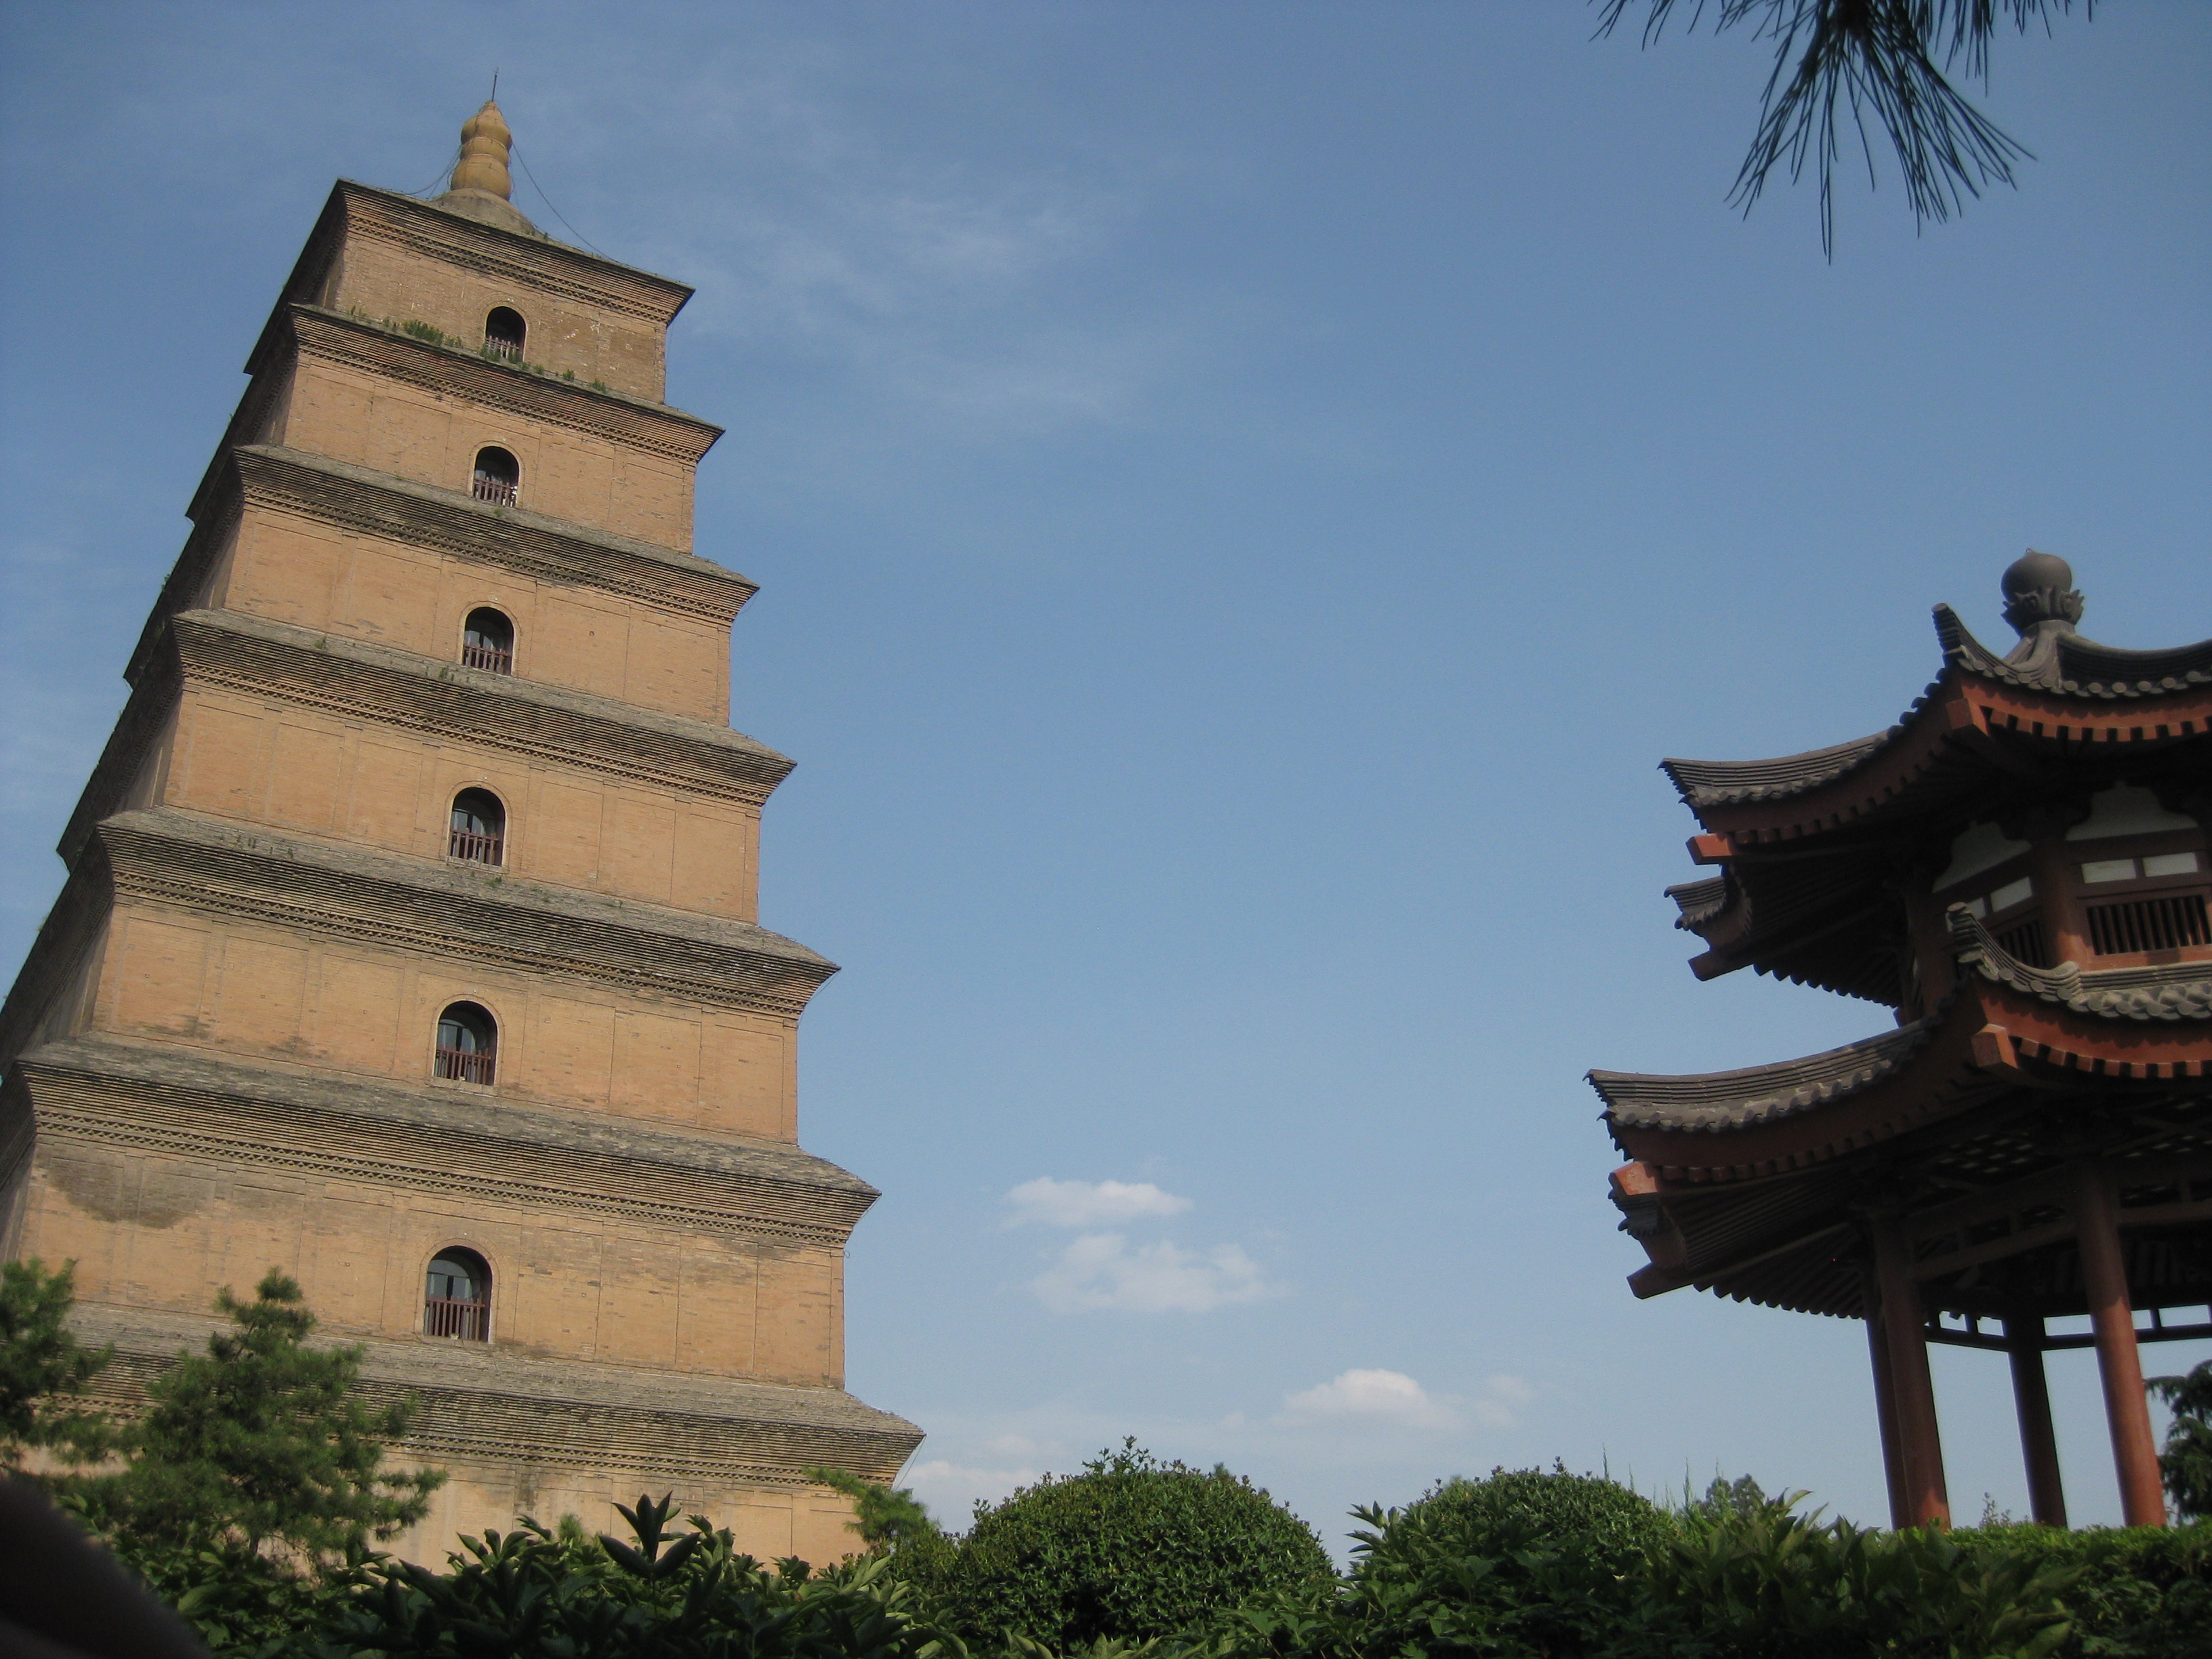 The Wild Goose >> File:Wild Goose Pagoda in Xi'an, China.JPG - Wikimedia Commons